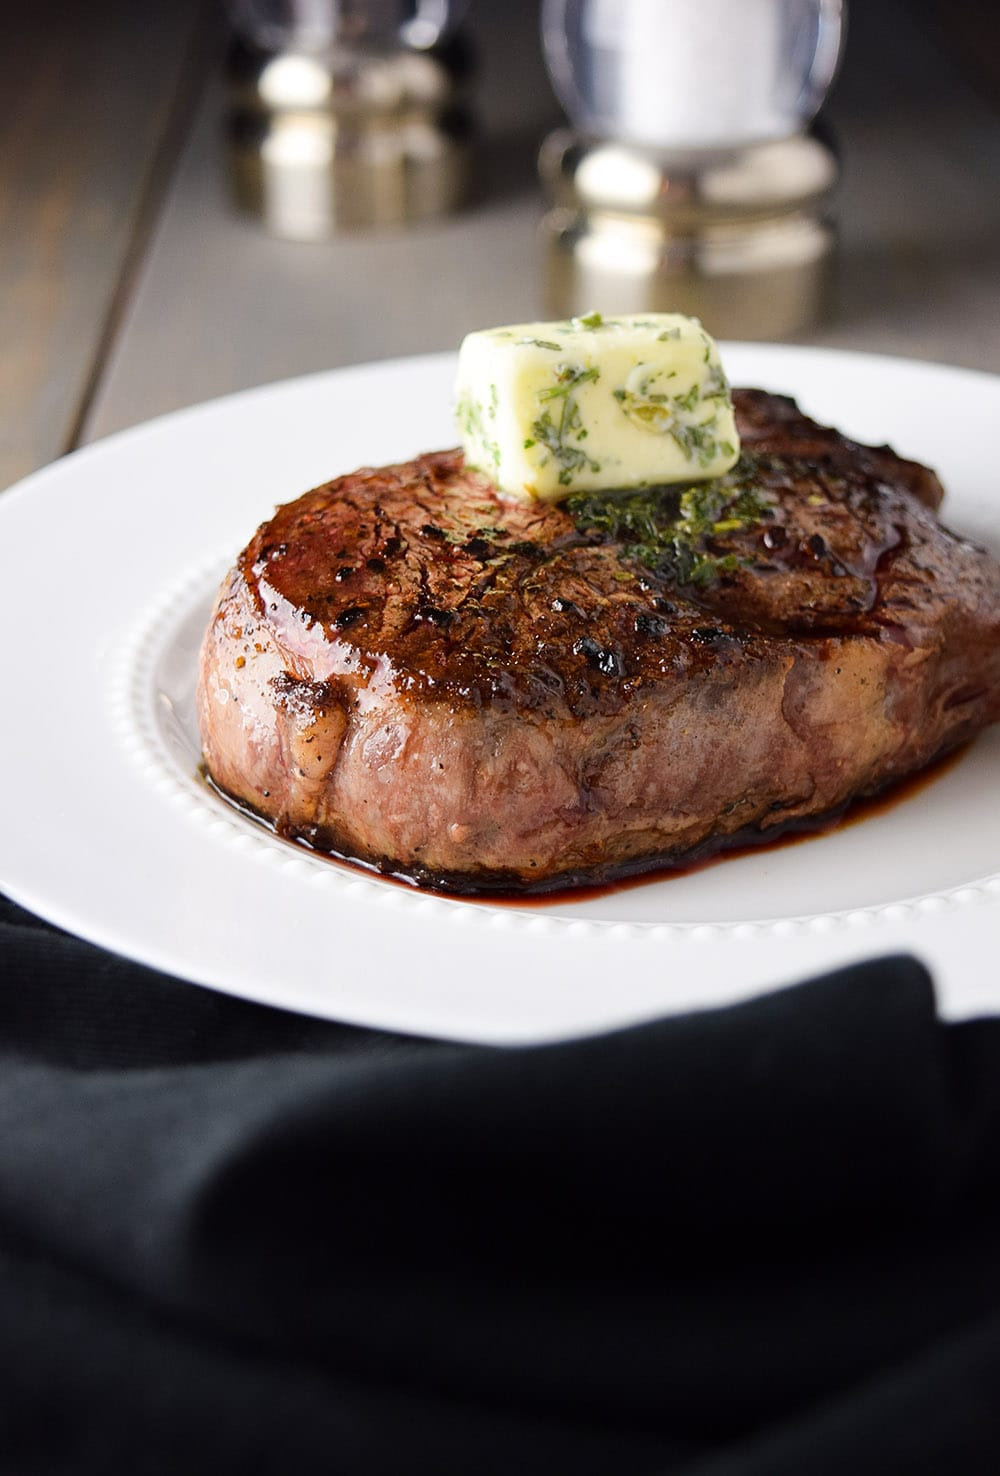 Pan-Seared Filet Mignon with Garlic & Herb Butter Recipe - The only filet mignon recipe you will ever need